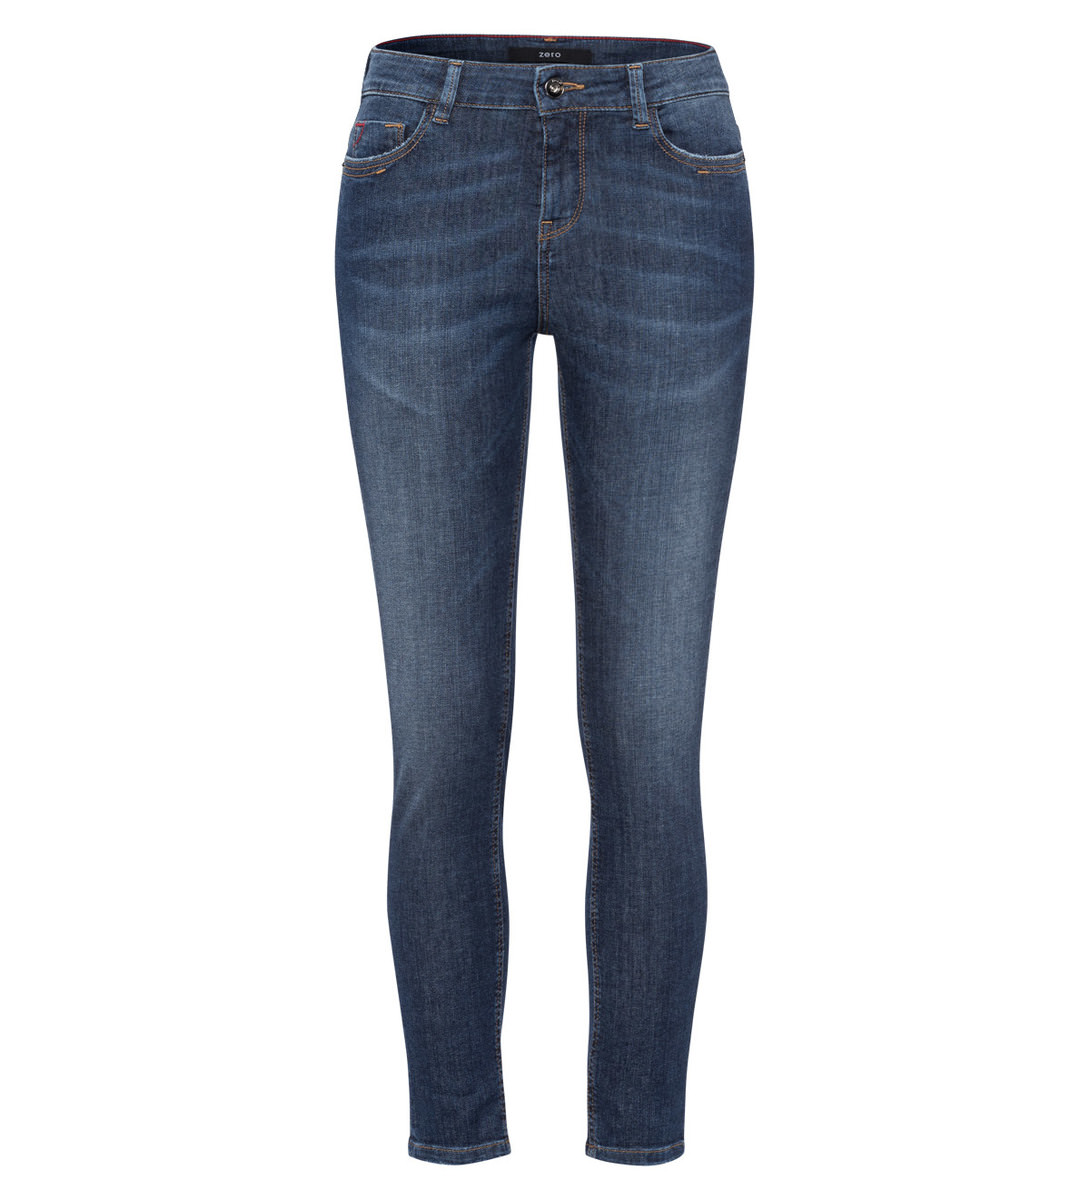 Jeans in Skinny fit 28 Inch in mid blue soft wash